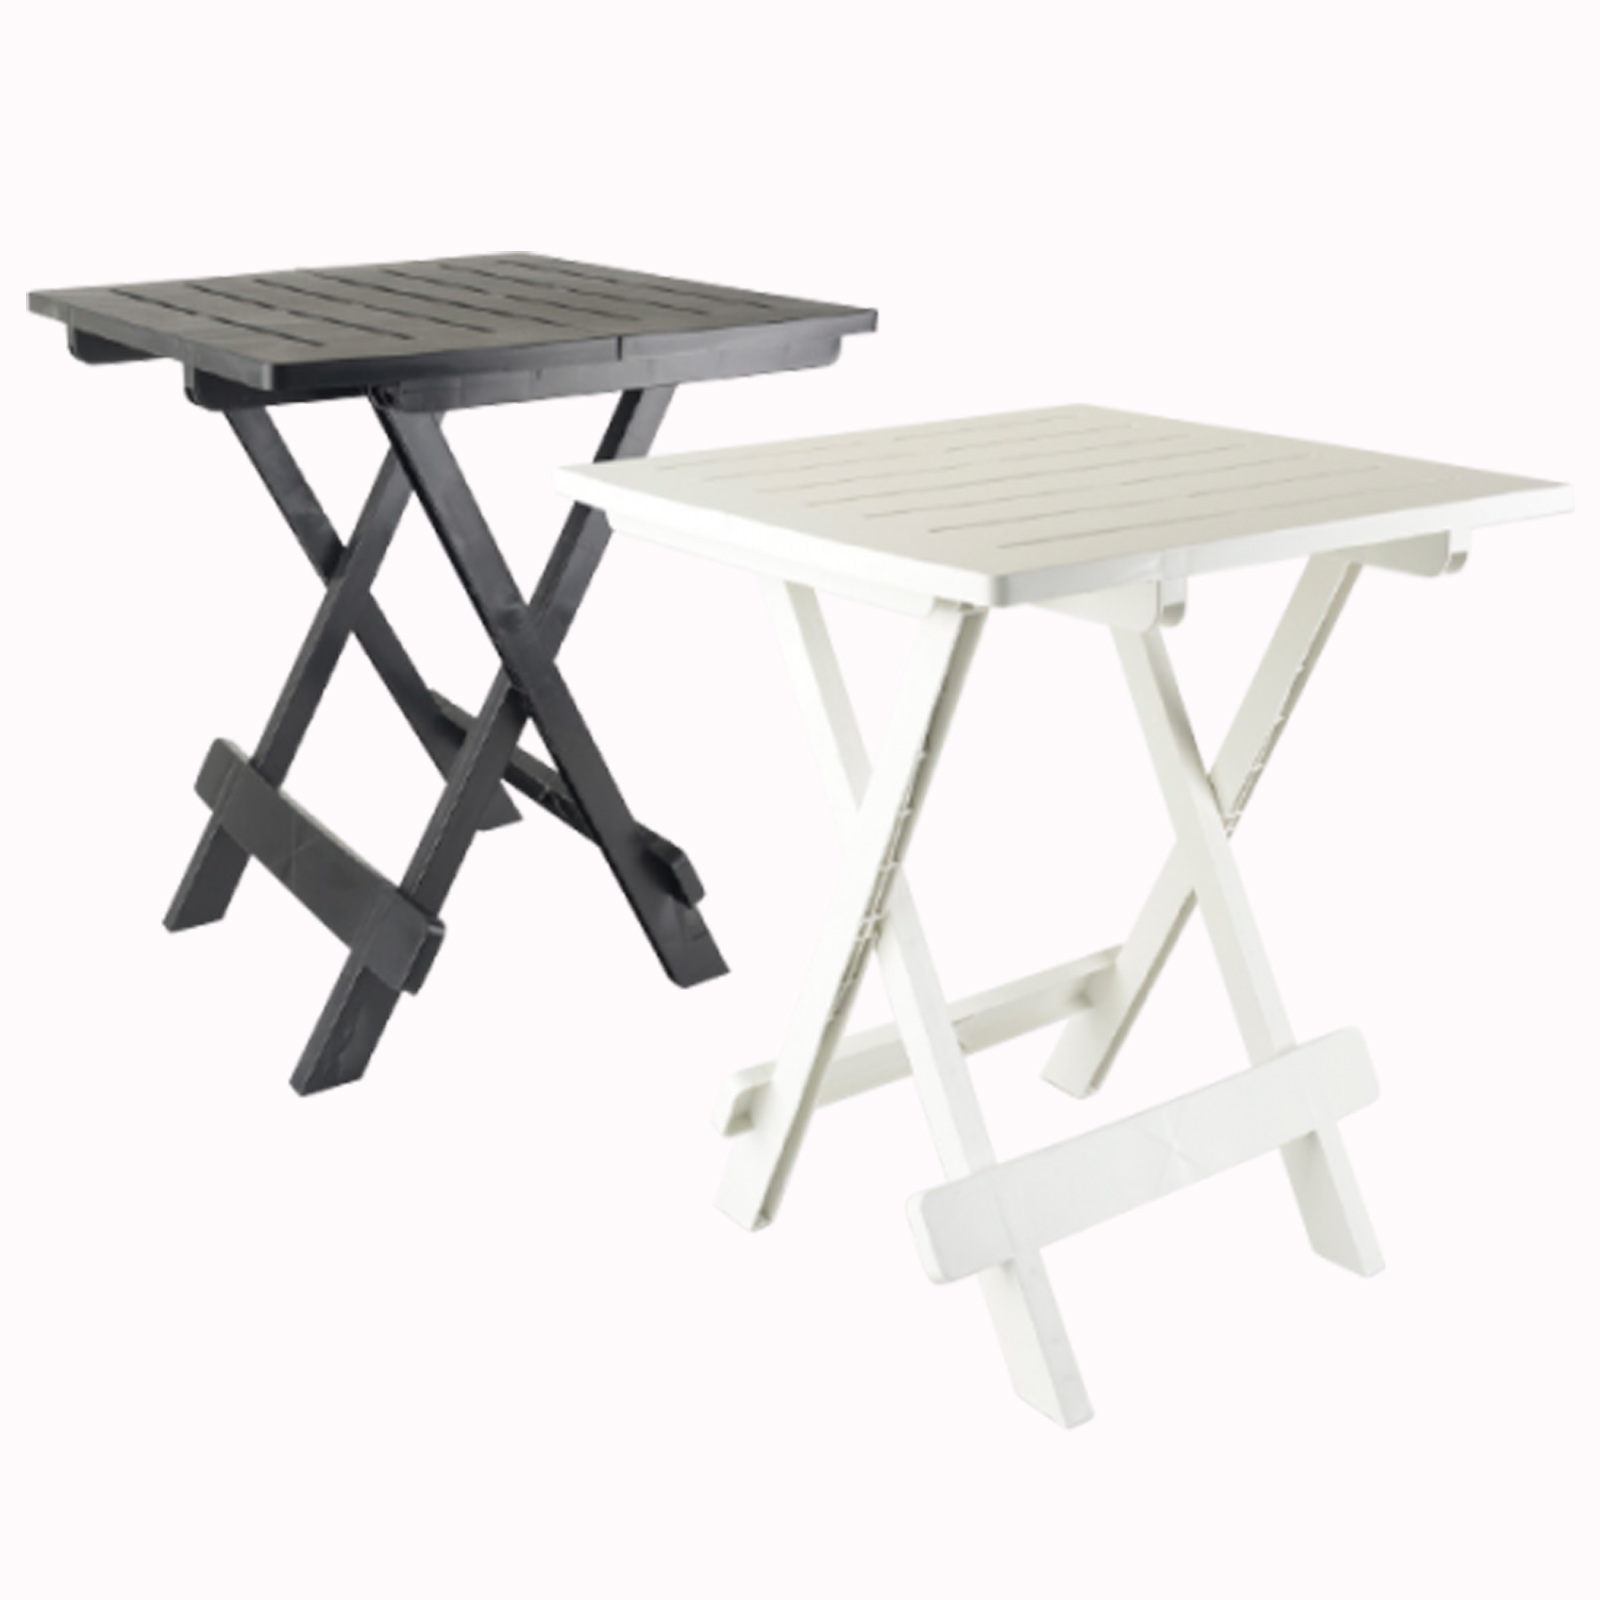 table pliante d 39 appoint terrasse camping pliable plastique blanc ebay. Black Bedroom Furniture Sets. Home Design Ideas